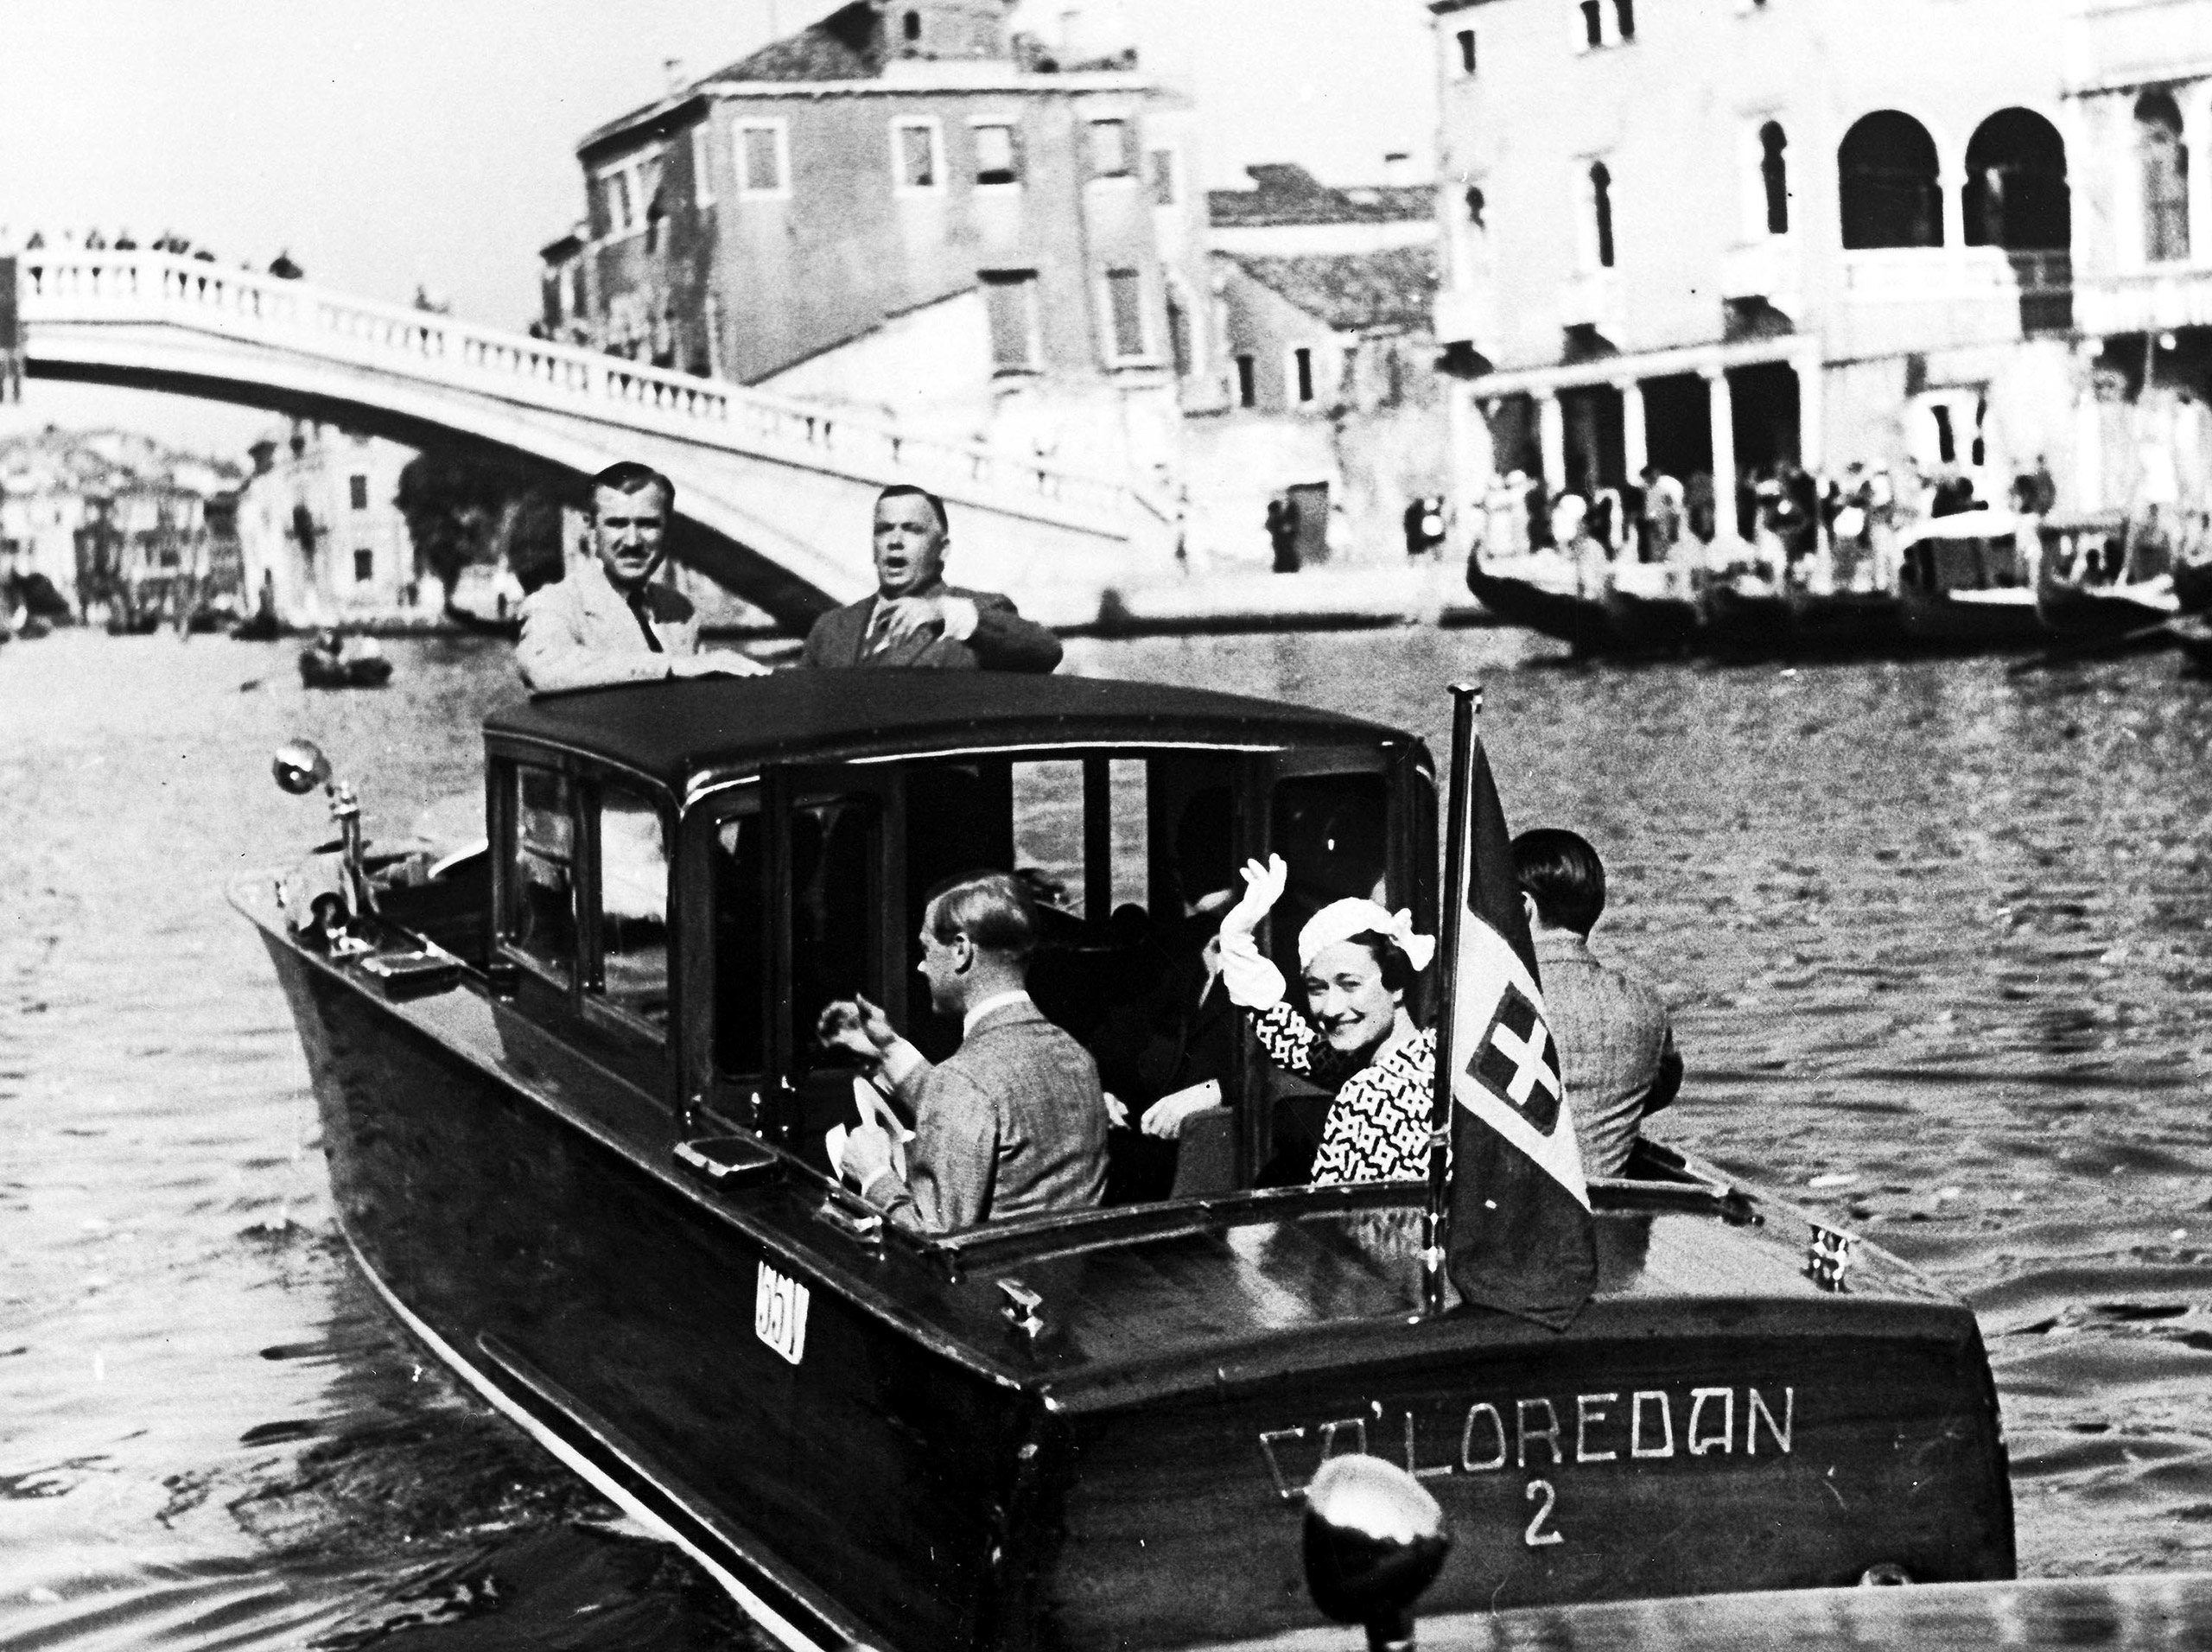 The Duke and Duchess of Windsor in a motor boat on one of the canals in Venice, Italy, June 4, 1937, wave to onlookers as they are taken to their hotel.